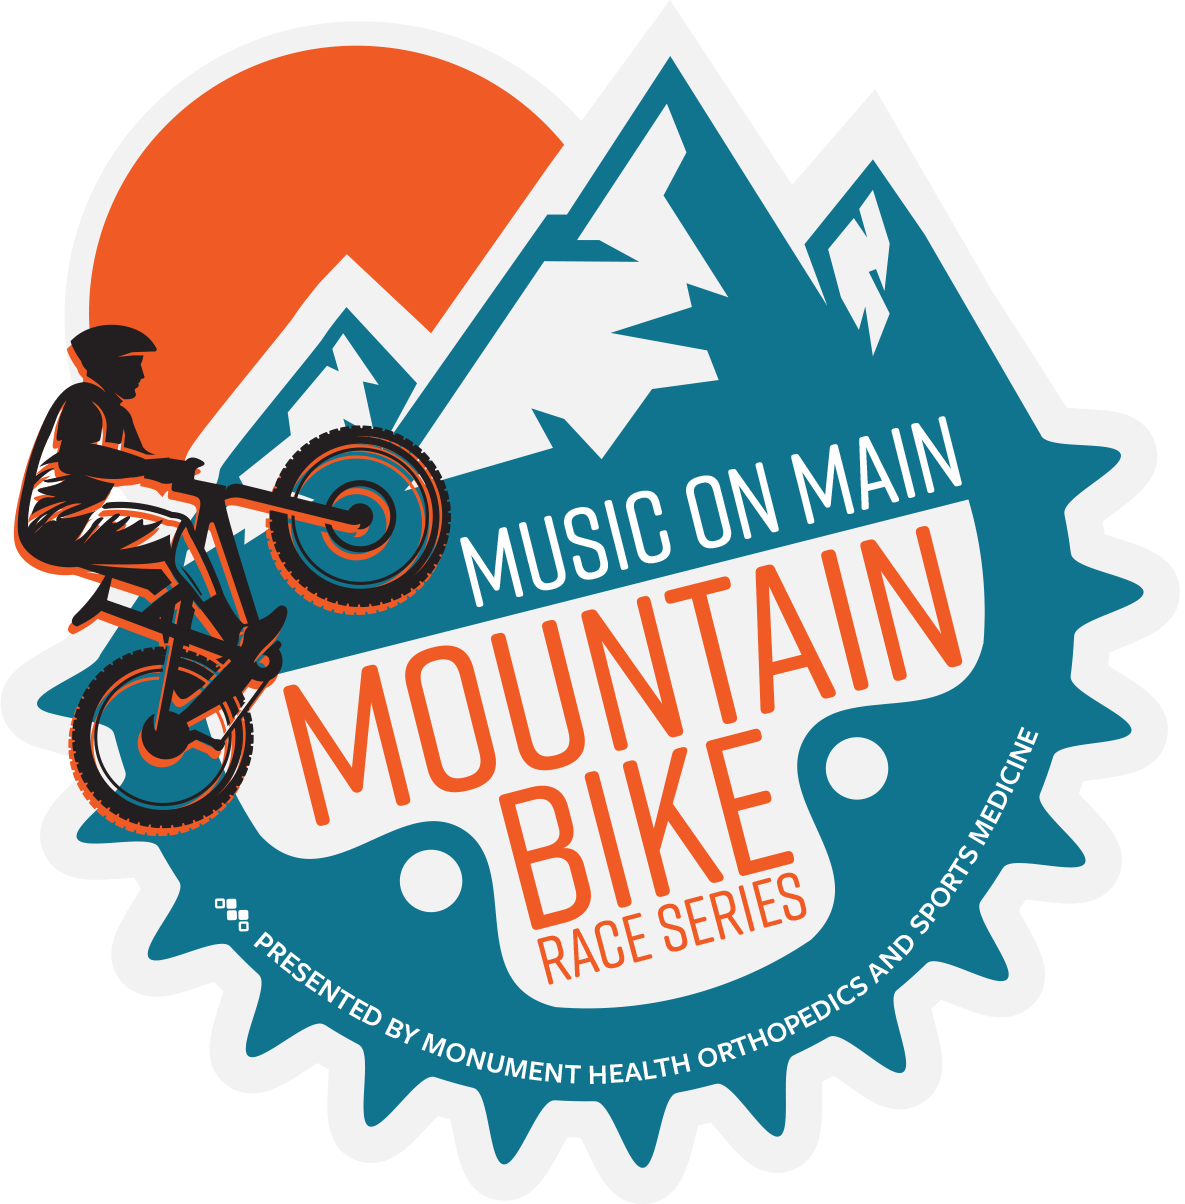 Music on main. Mountain bike race series. presented by monument health orthopedics and sports medicine